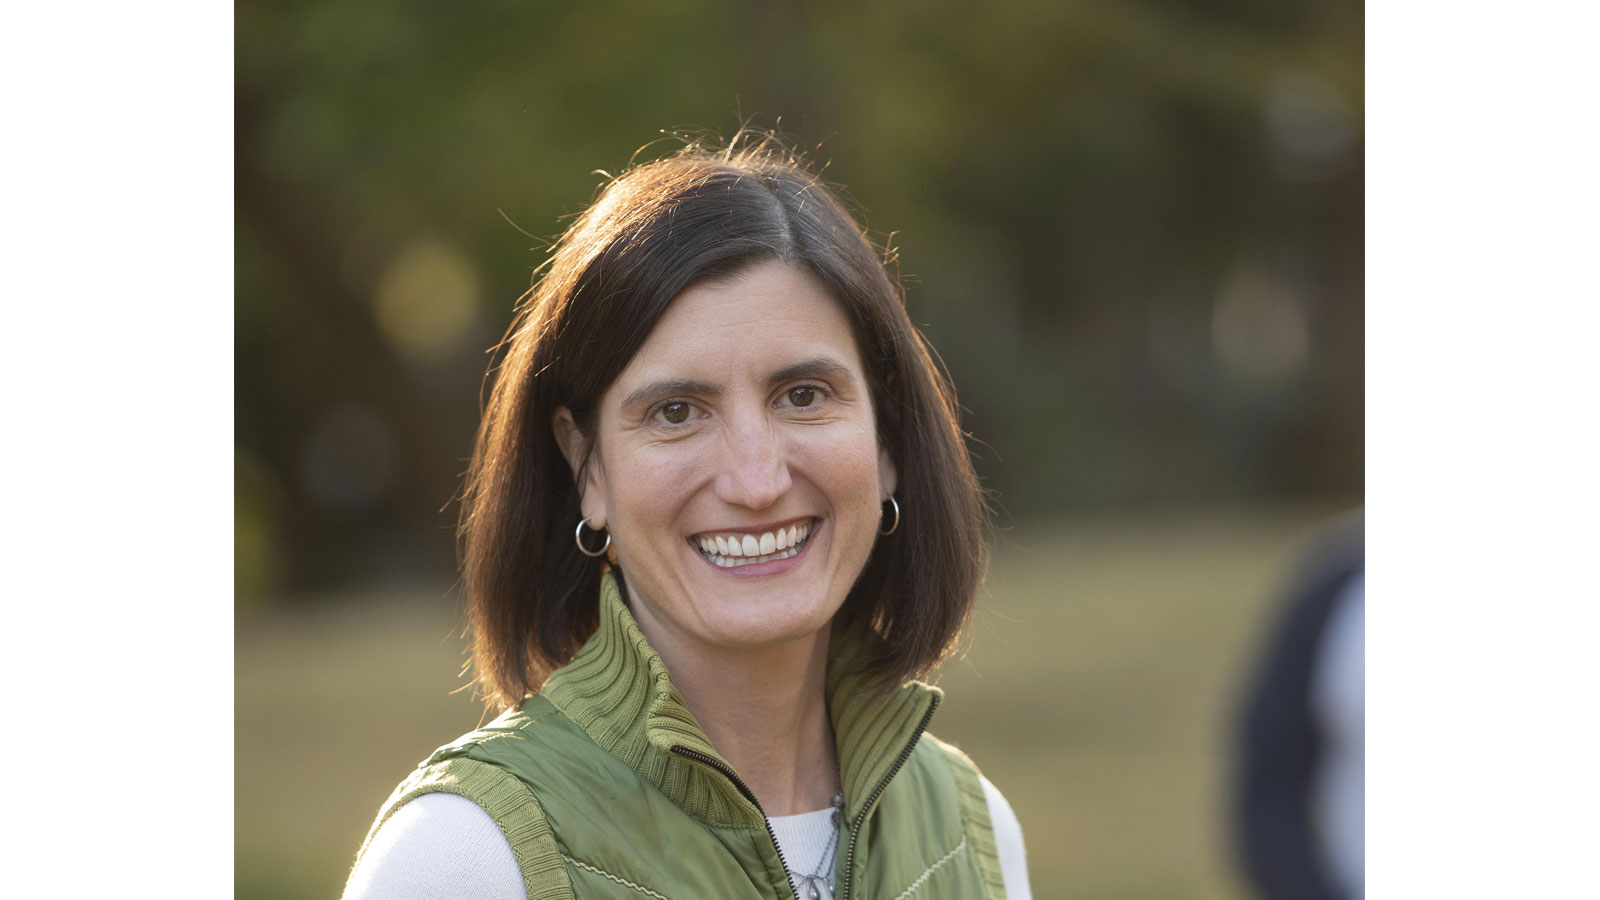 Human Rights Campaign Endorses Kate Schroder for Congress